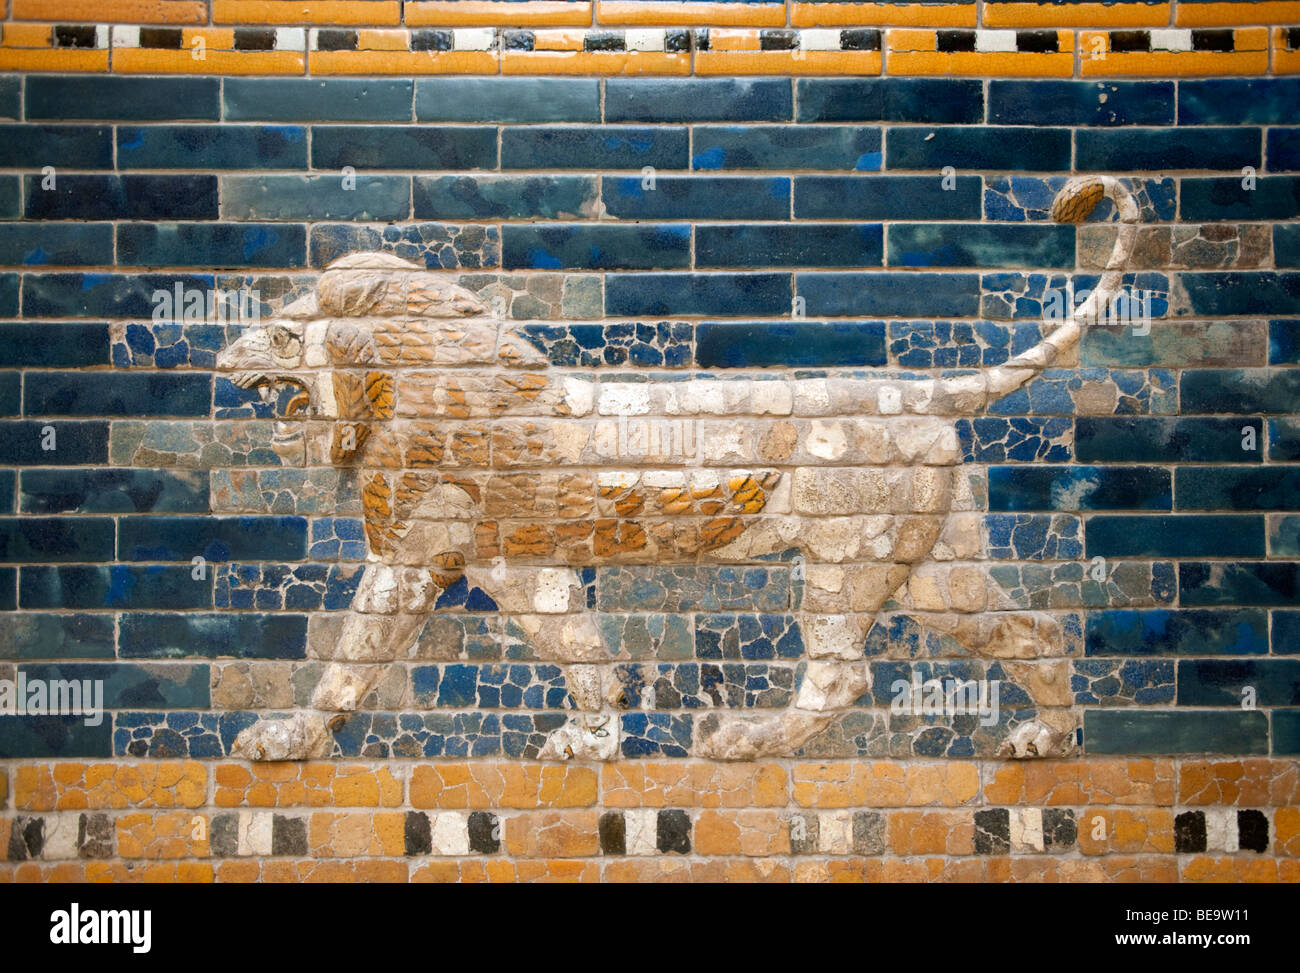 Lion mosaic on wall of Processional Way from Babylon in Pergamon Museum on Museumsinsel in Berlin Germany Stock Photo